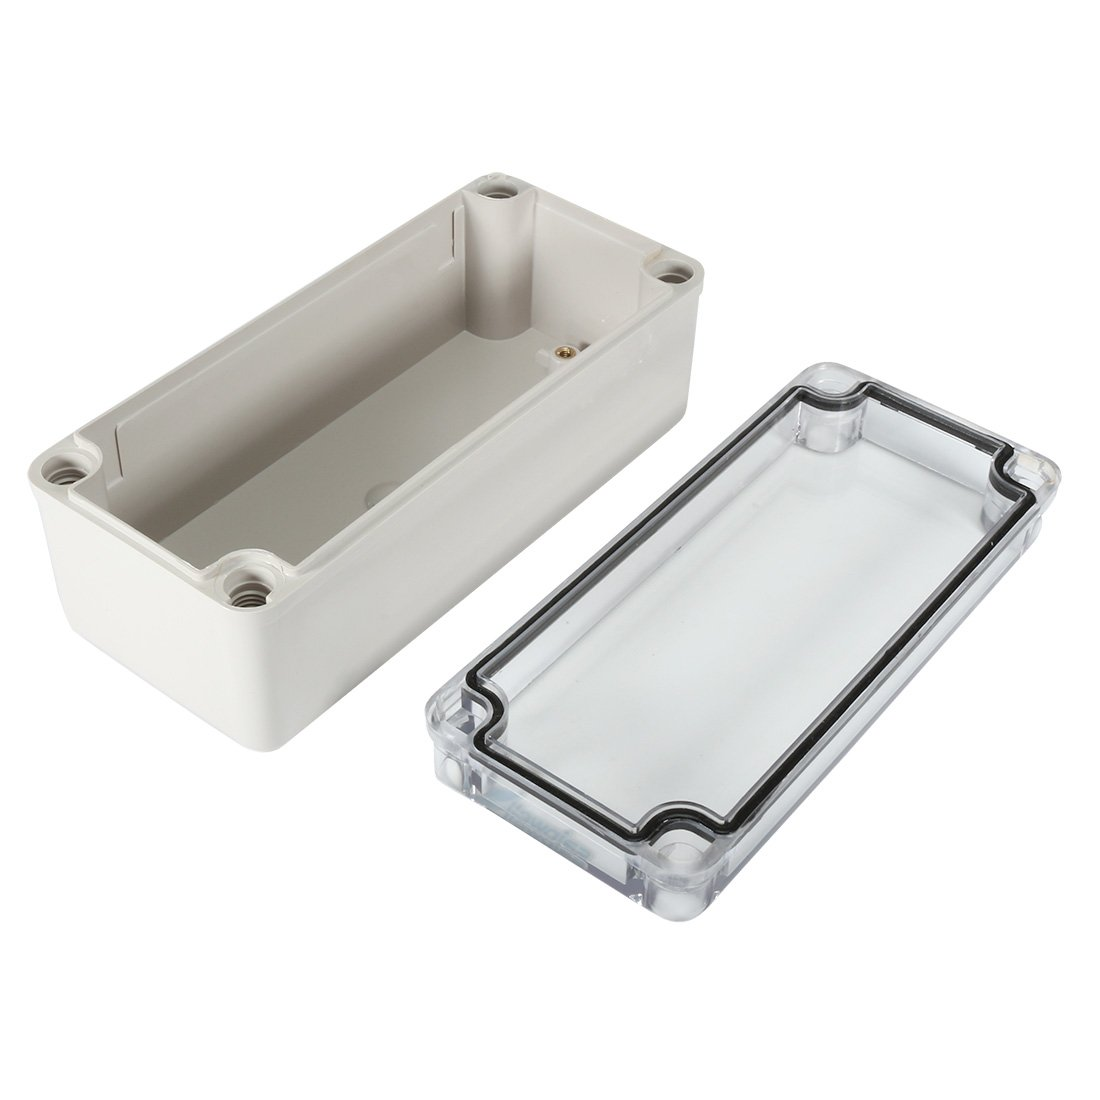 uxcell/® Outdoor Electrical Enclosure Dustproof IP65 Junction Boxes 115x90x55mm